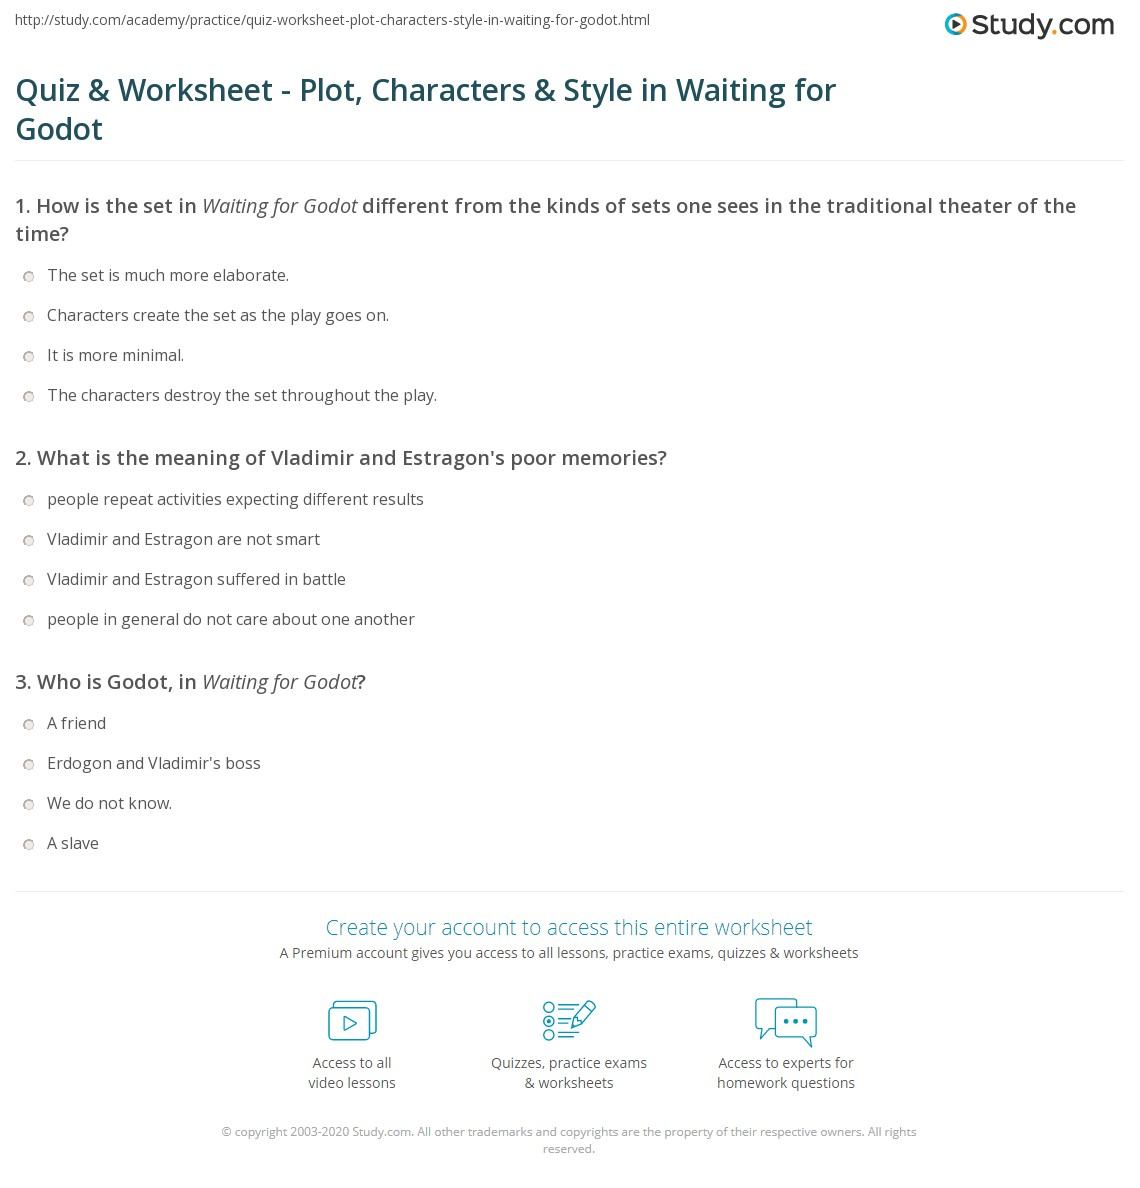 essays on waiting for godot best ideas about waiting for godot  quiz worksheet plot characters style in waiting for godot print waiting for godot plot characters and